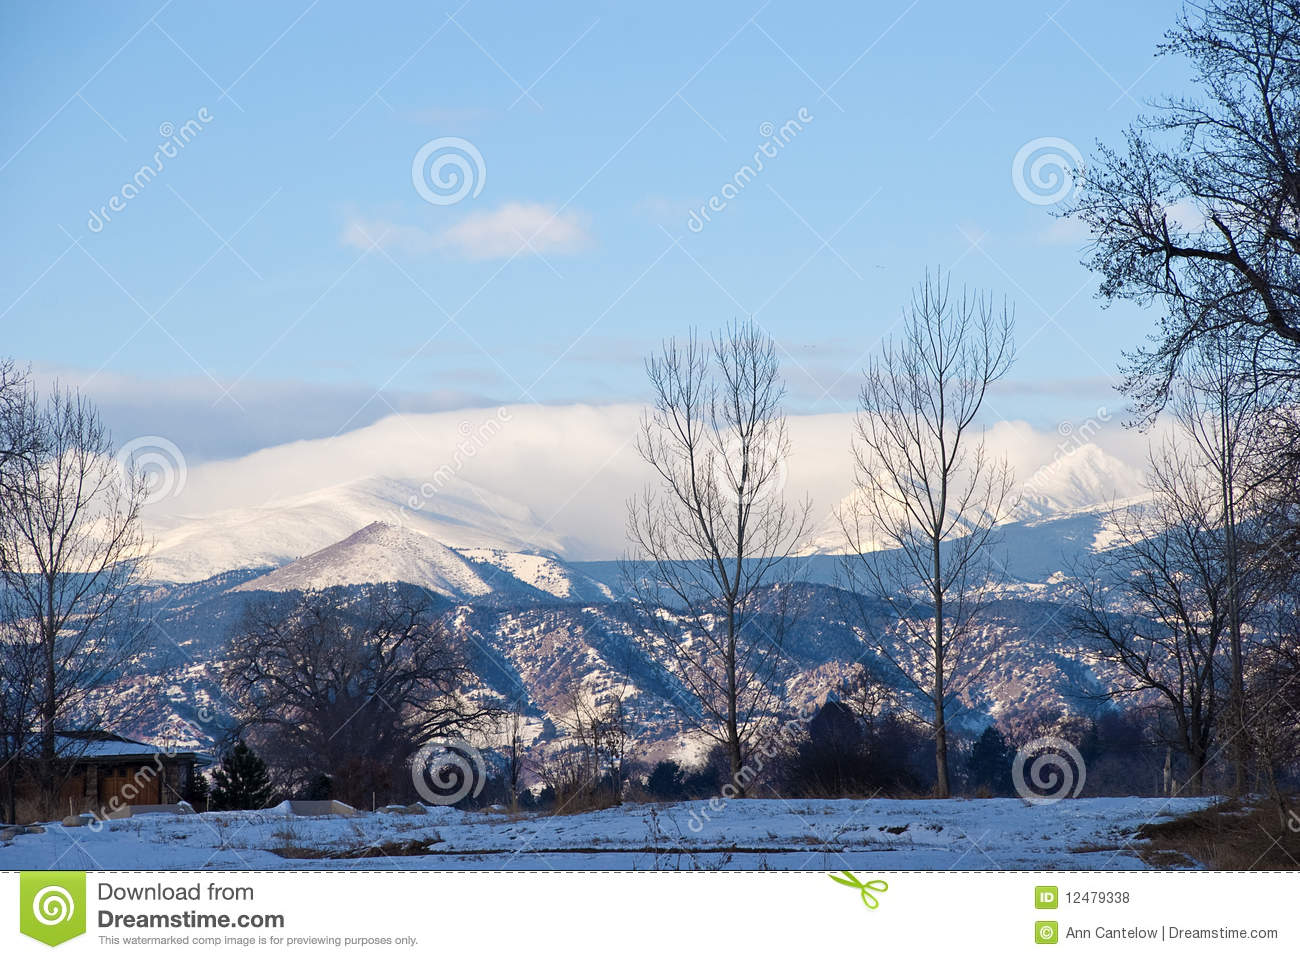 Distant Snowy Mountains With Foreground